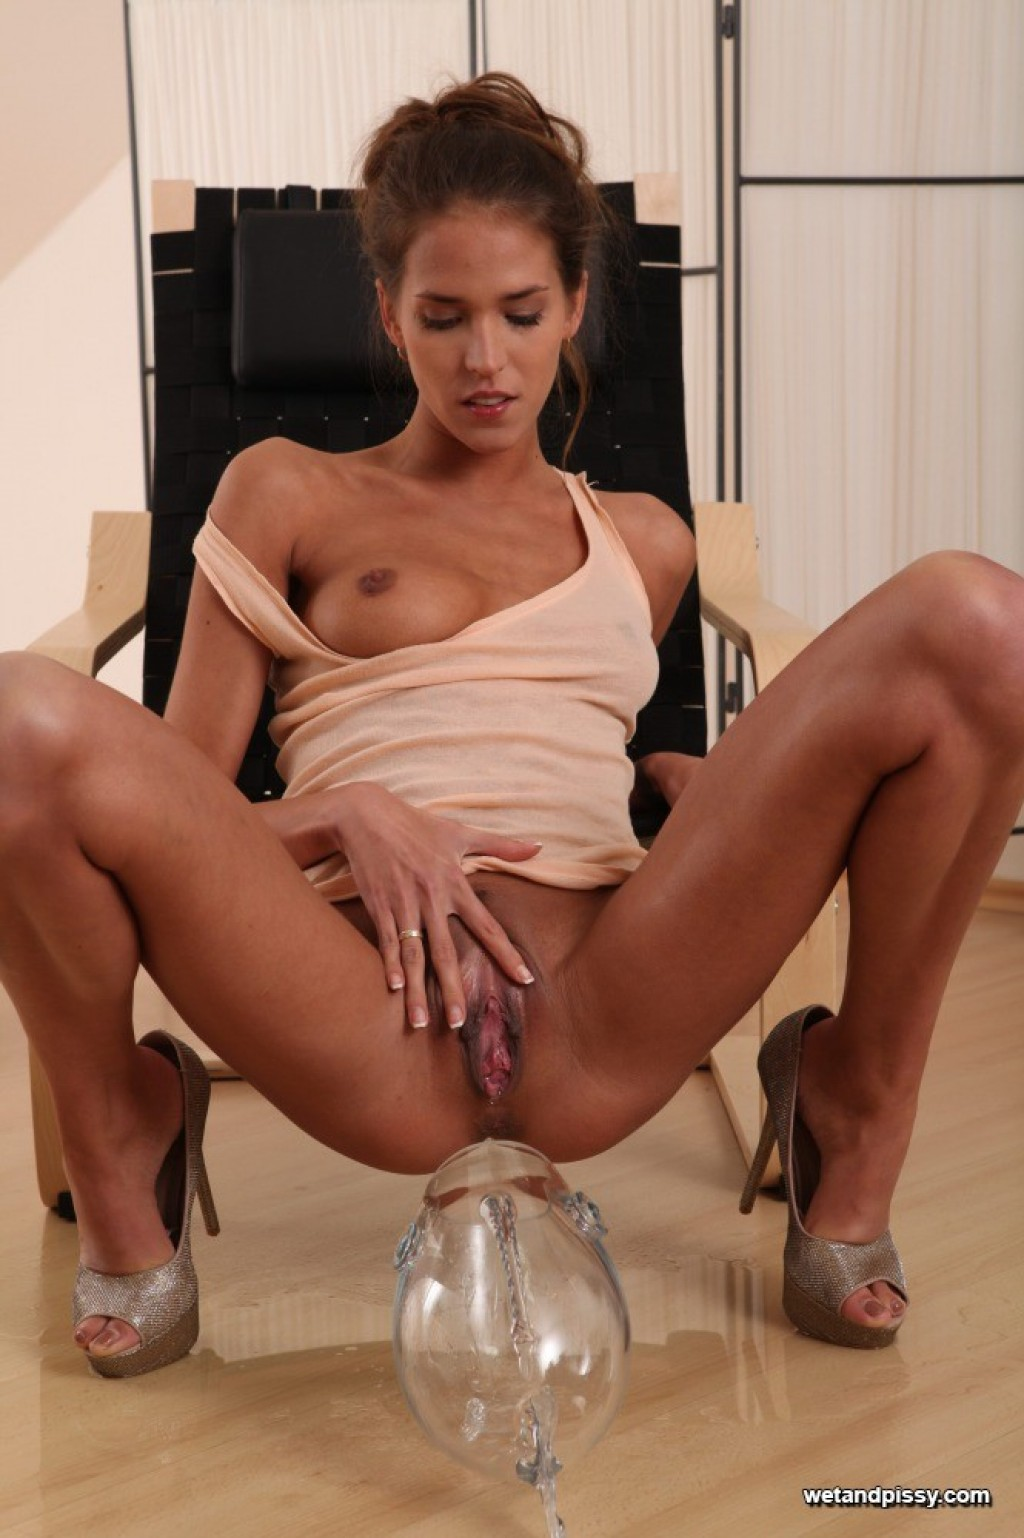 Silvie DeLux nude pics in Silvie from WETANDPISSY